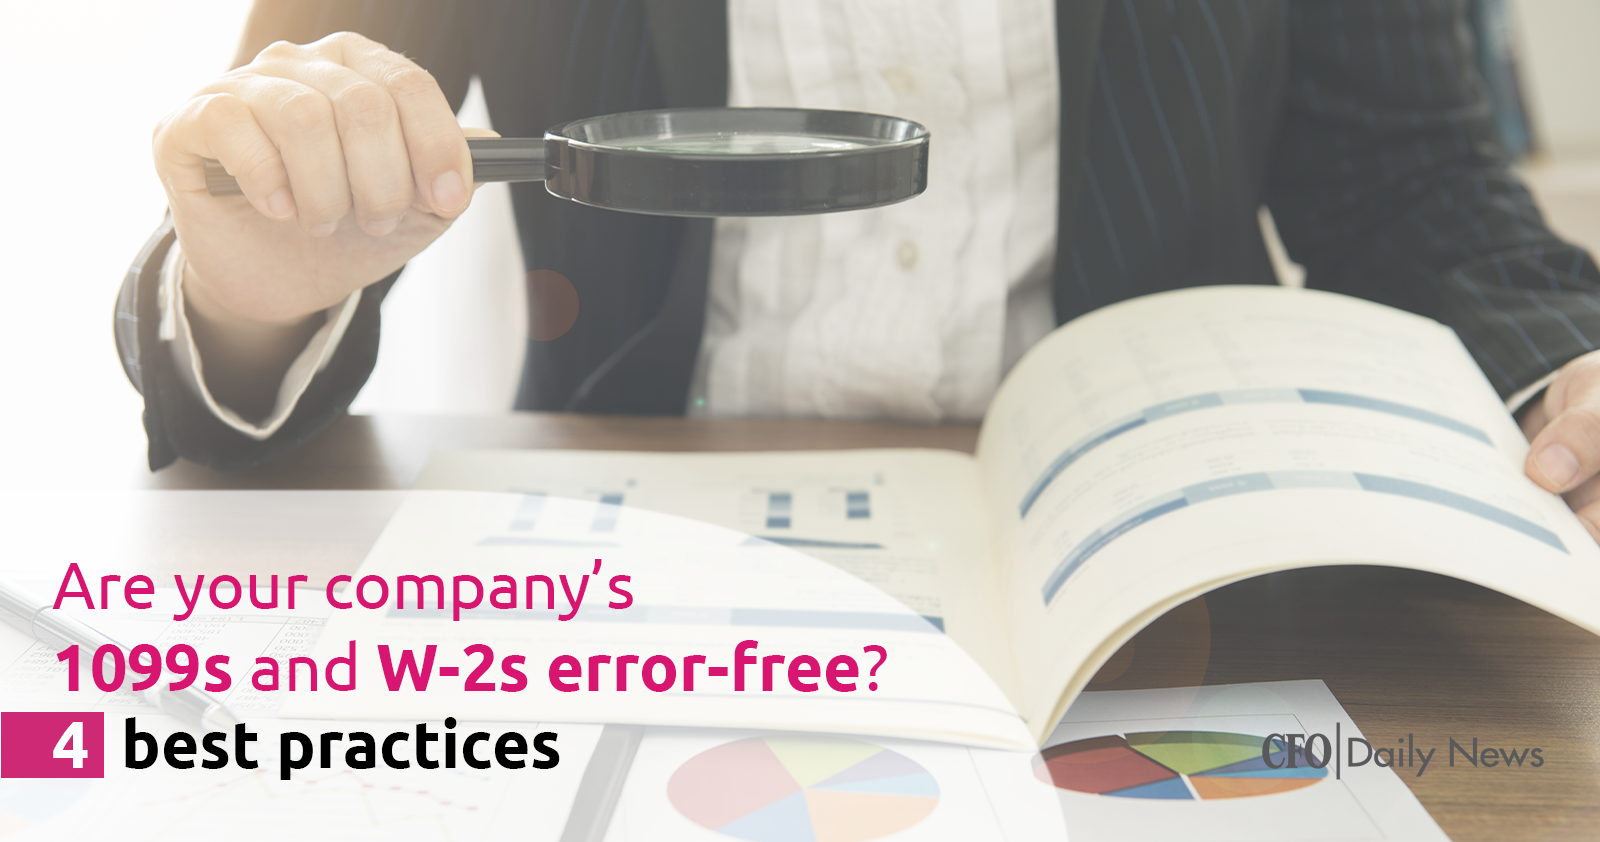 are your company's 1099s and W-2s error-free 4 best practices